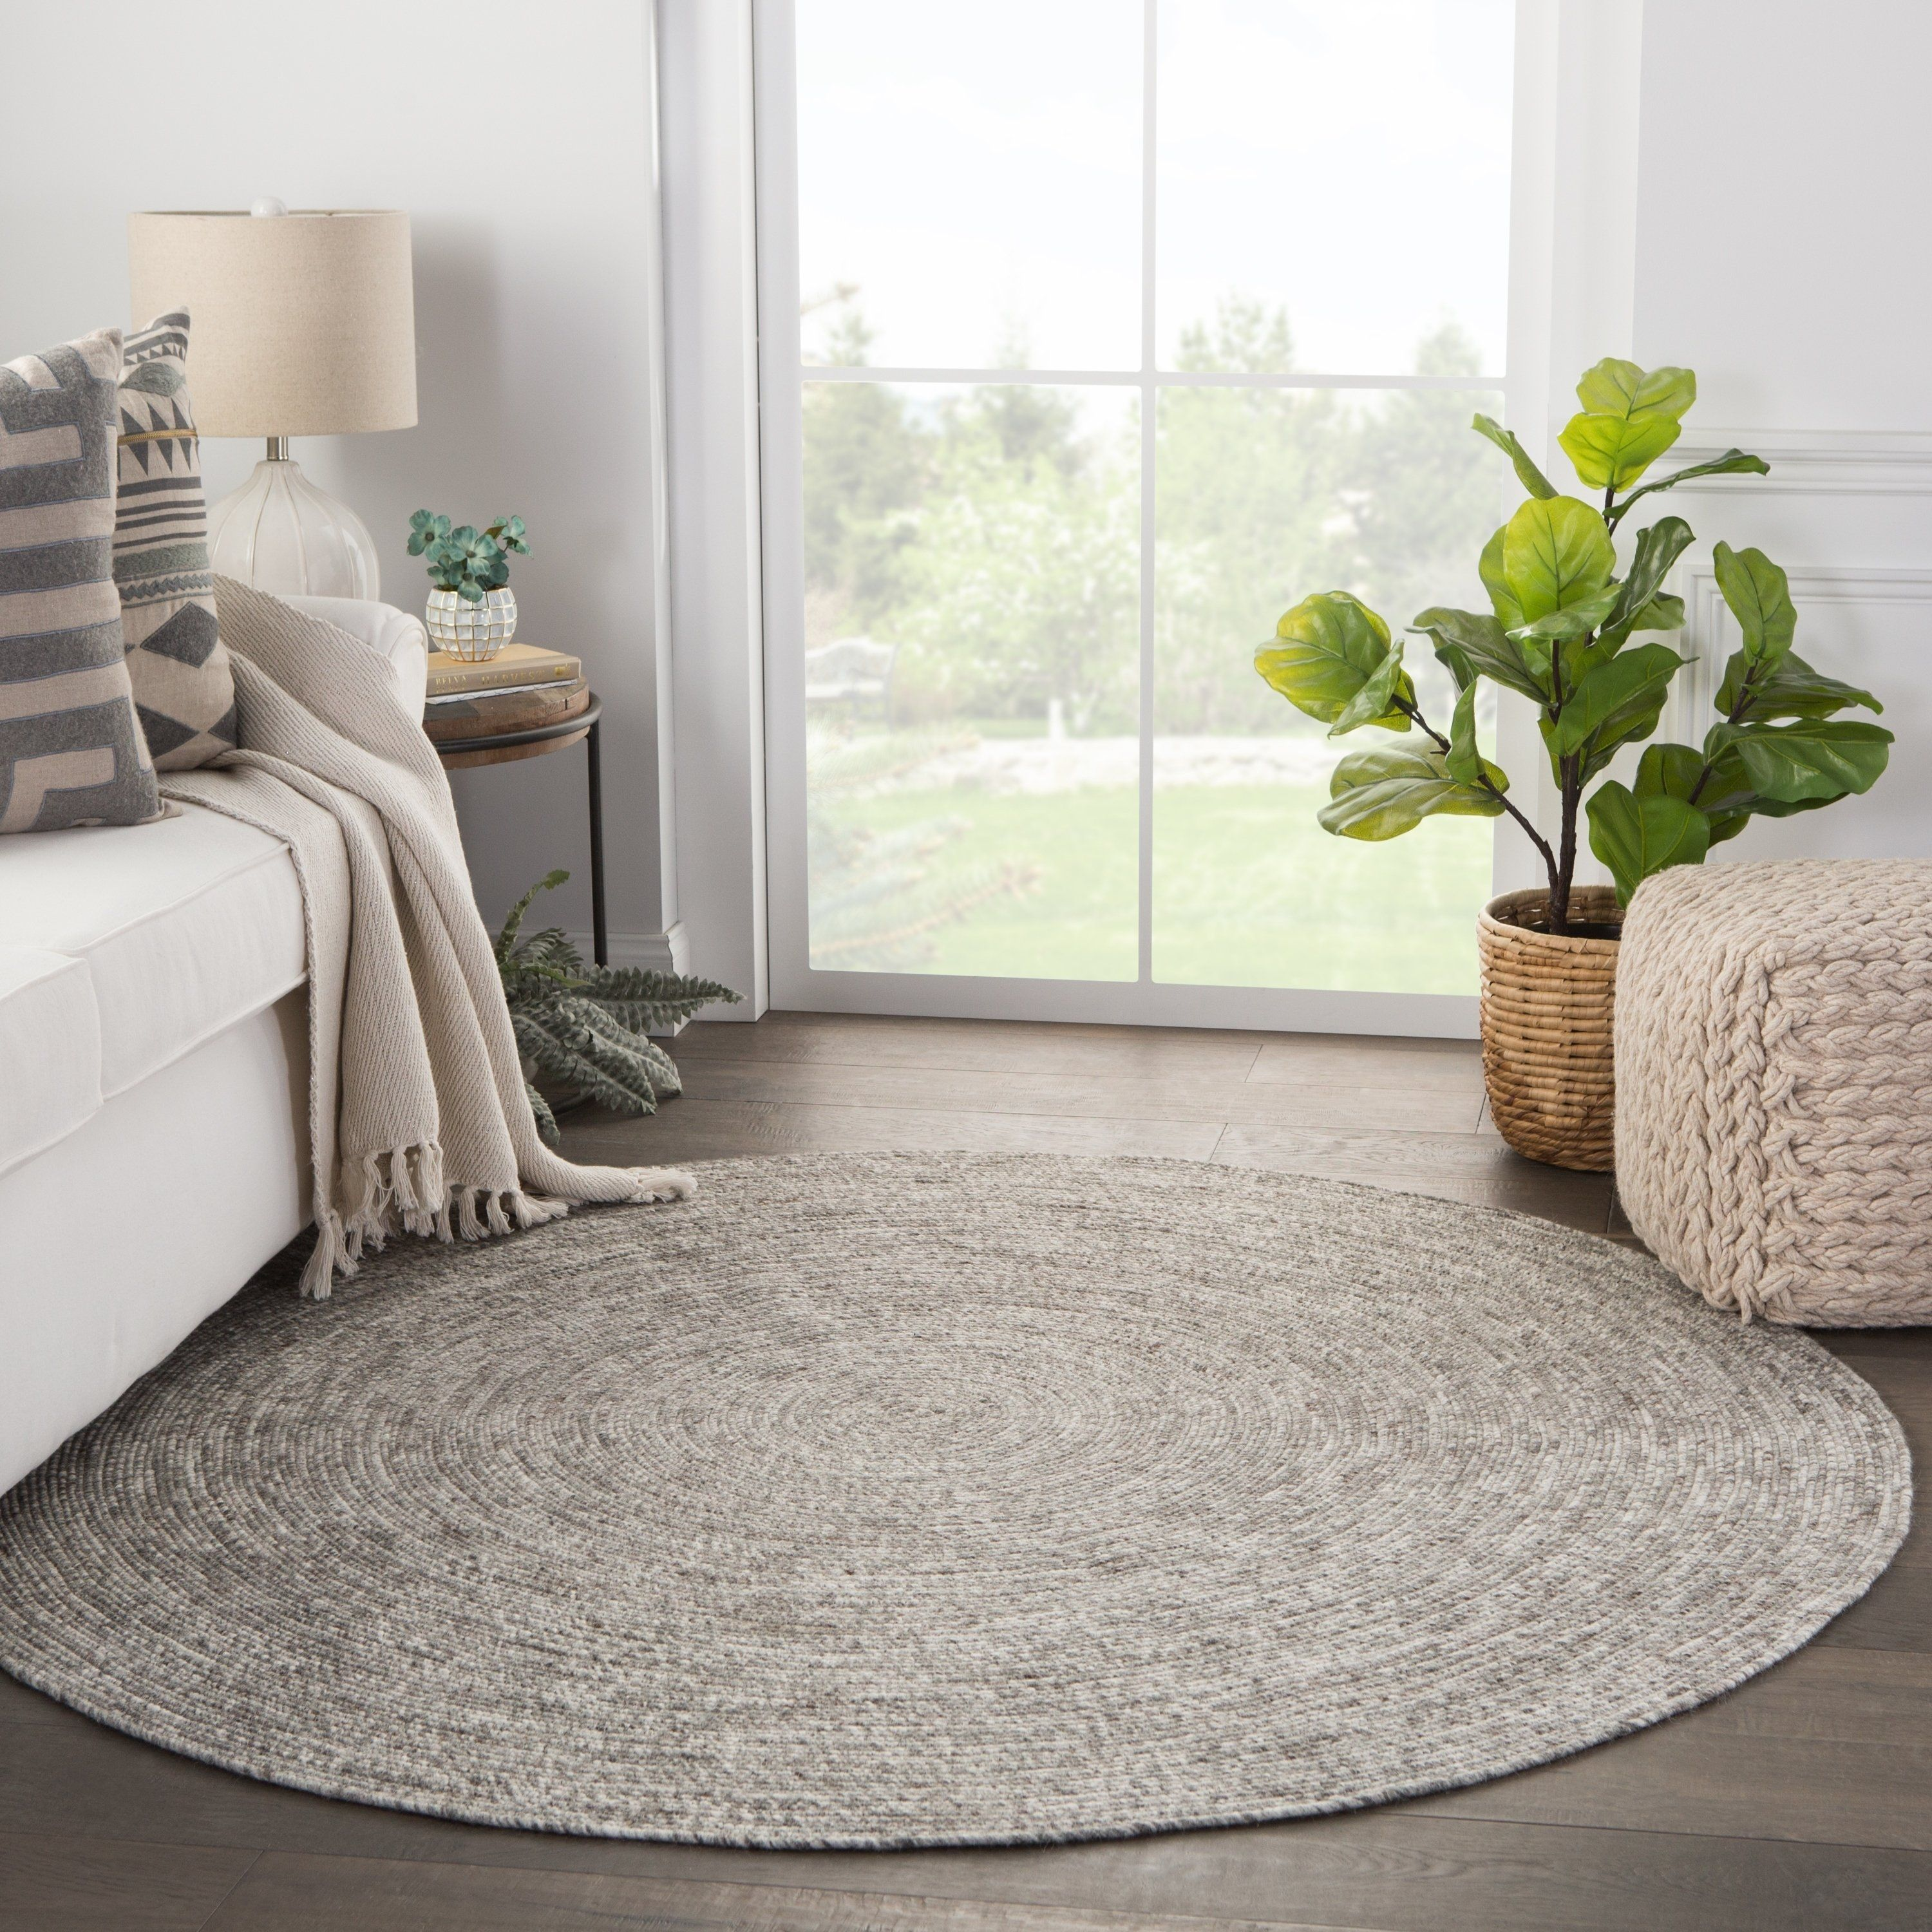 Mindra Natural Solid Round Area Rug 6 Round Gray White Juniper Home Round Rugs White Area Rug Round Area Rugs